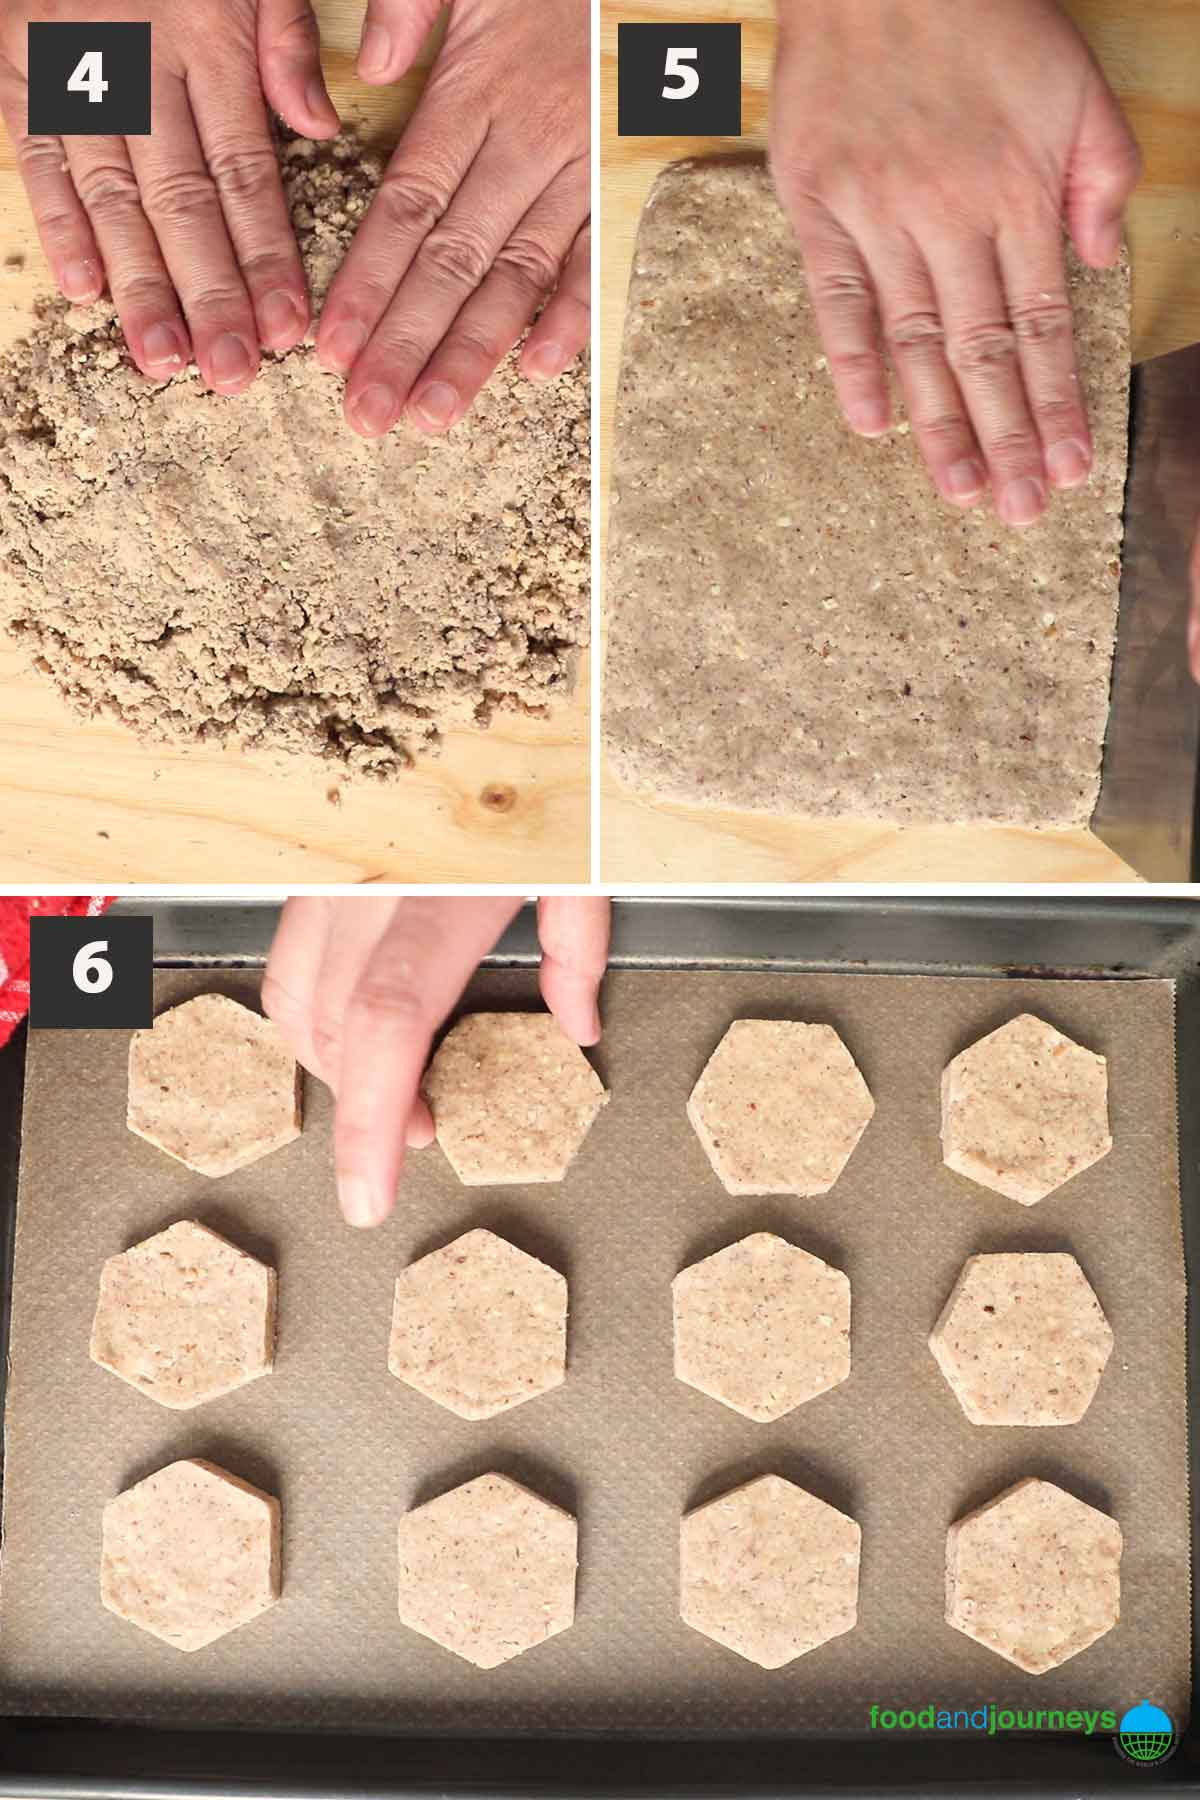 Latest, second part of a collage of images showing the step by step process of making Spanish Christmas cookies.